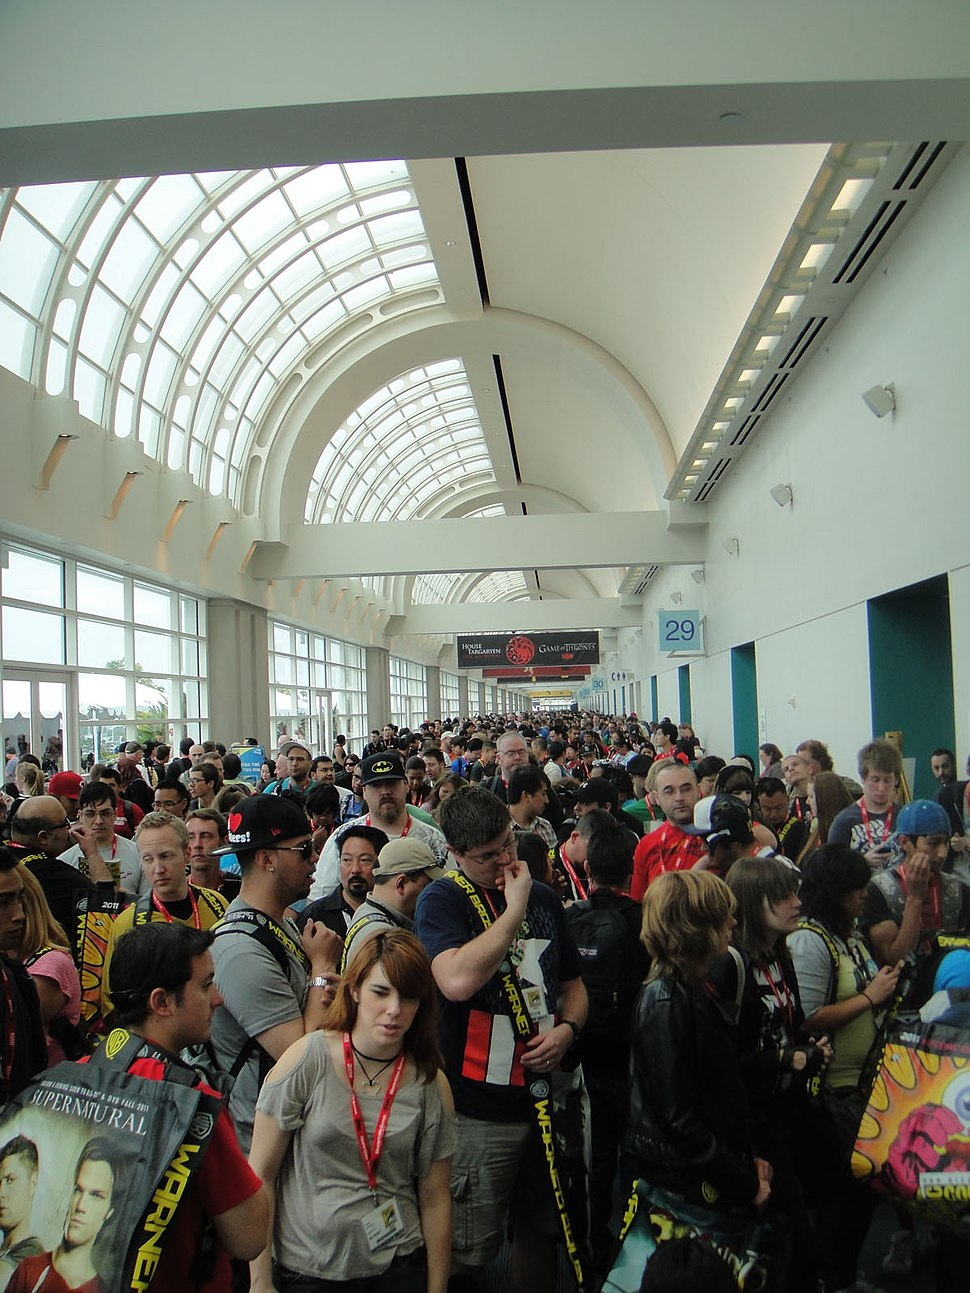 San Diego Comic Con 2011 - waiting for exhibition hall to open